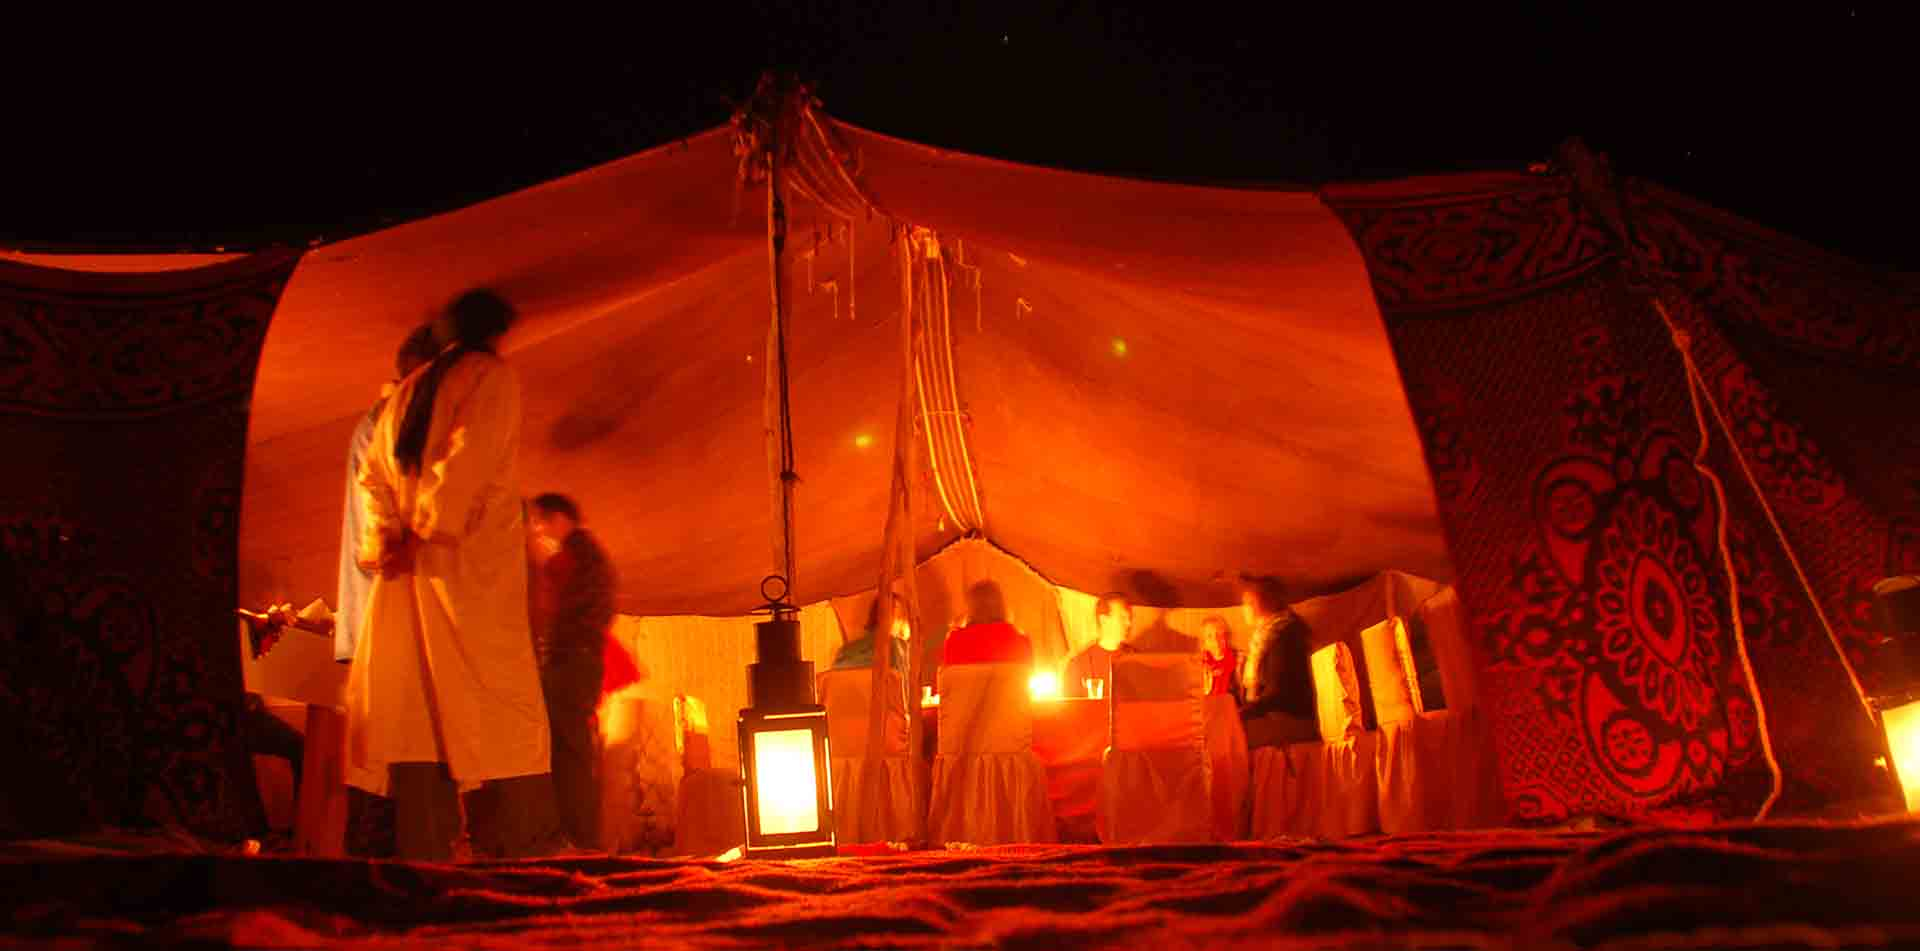 Berger Camp at Night, Morocco